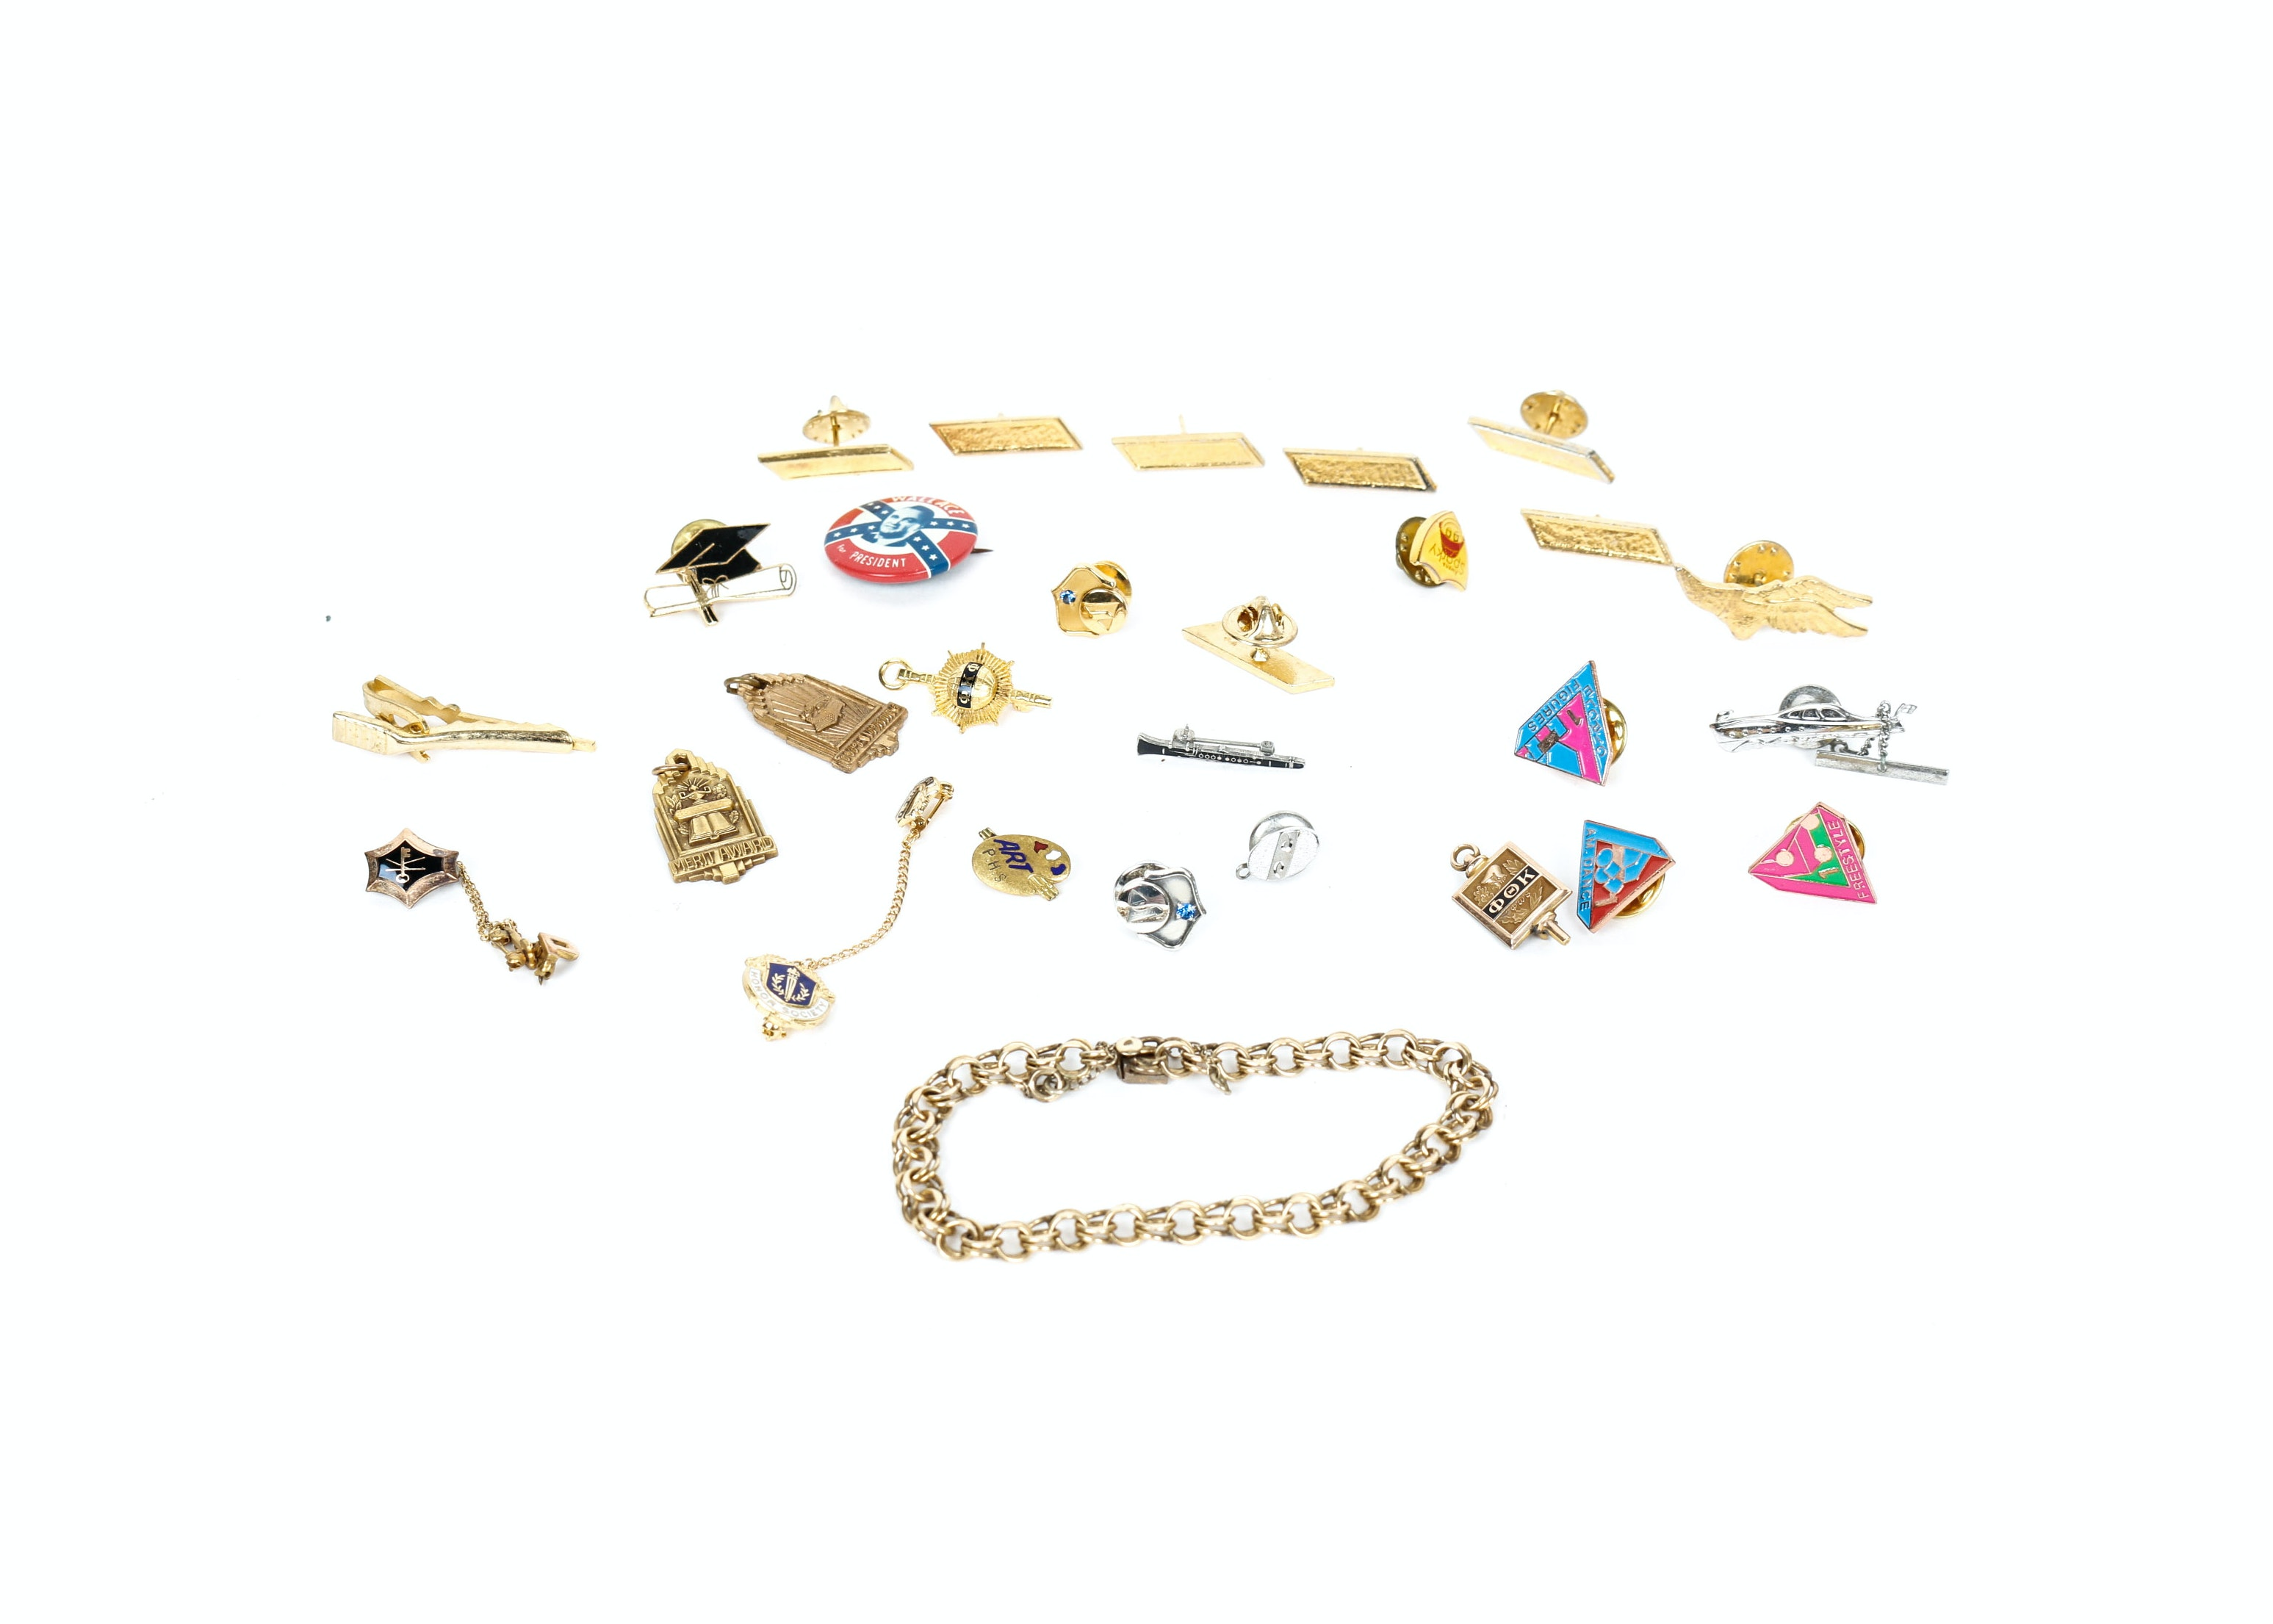 Collection of Pinbacks and Tie Clips including Gold-Filled Charm Bracelet